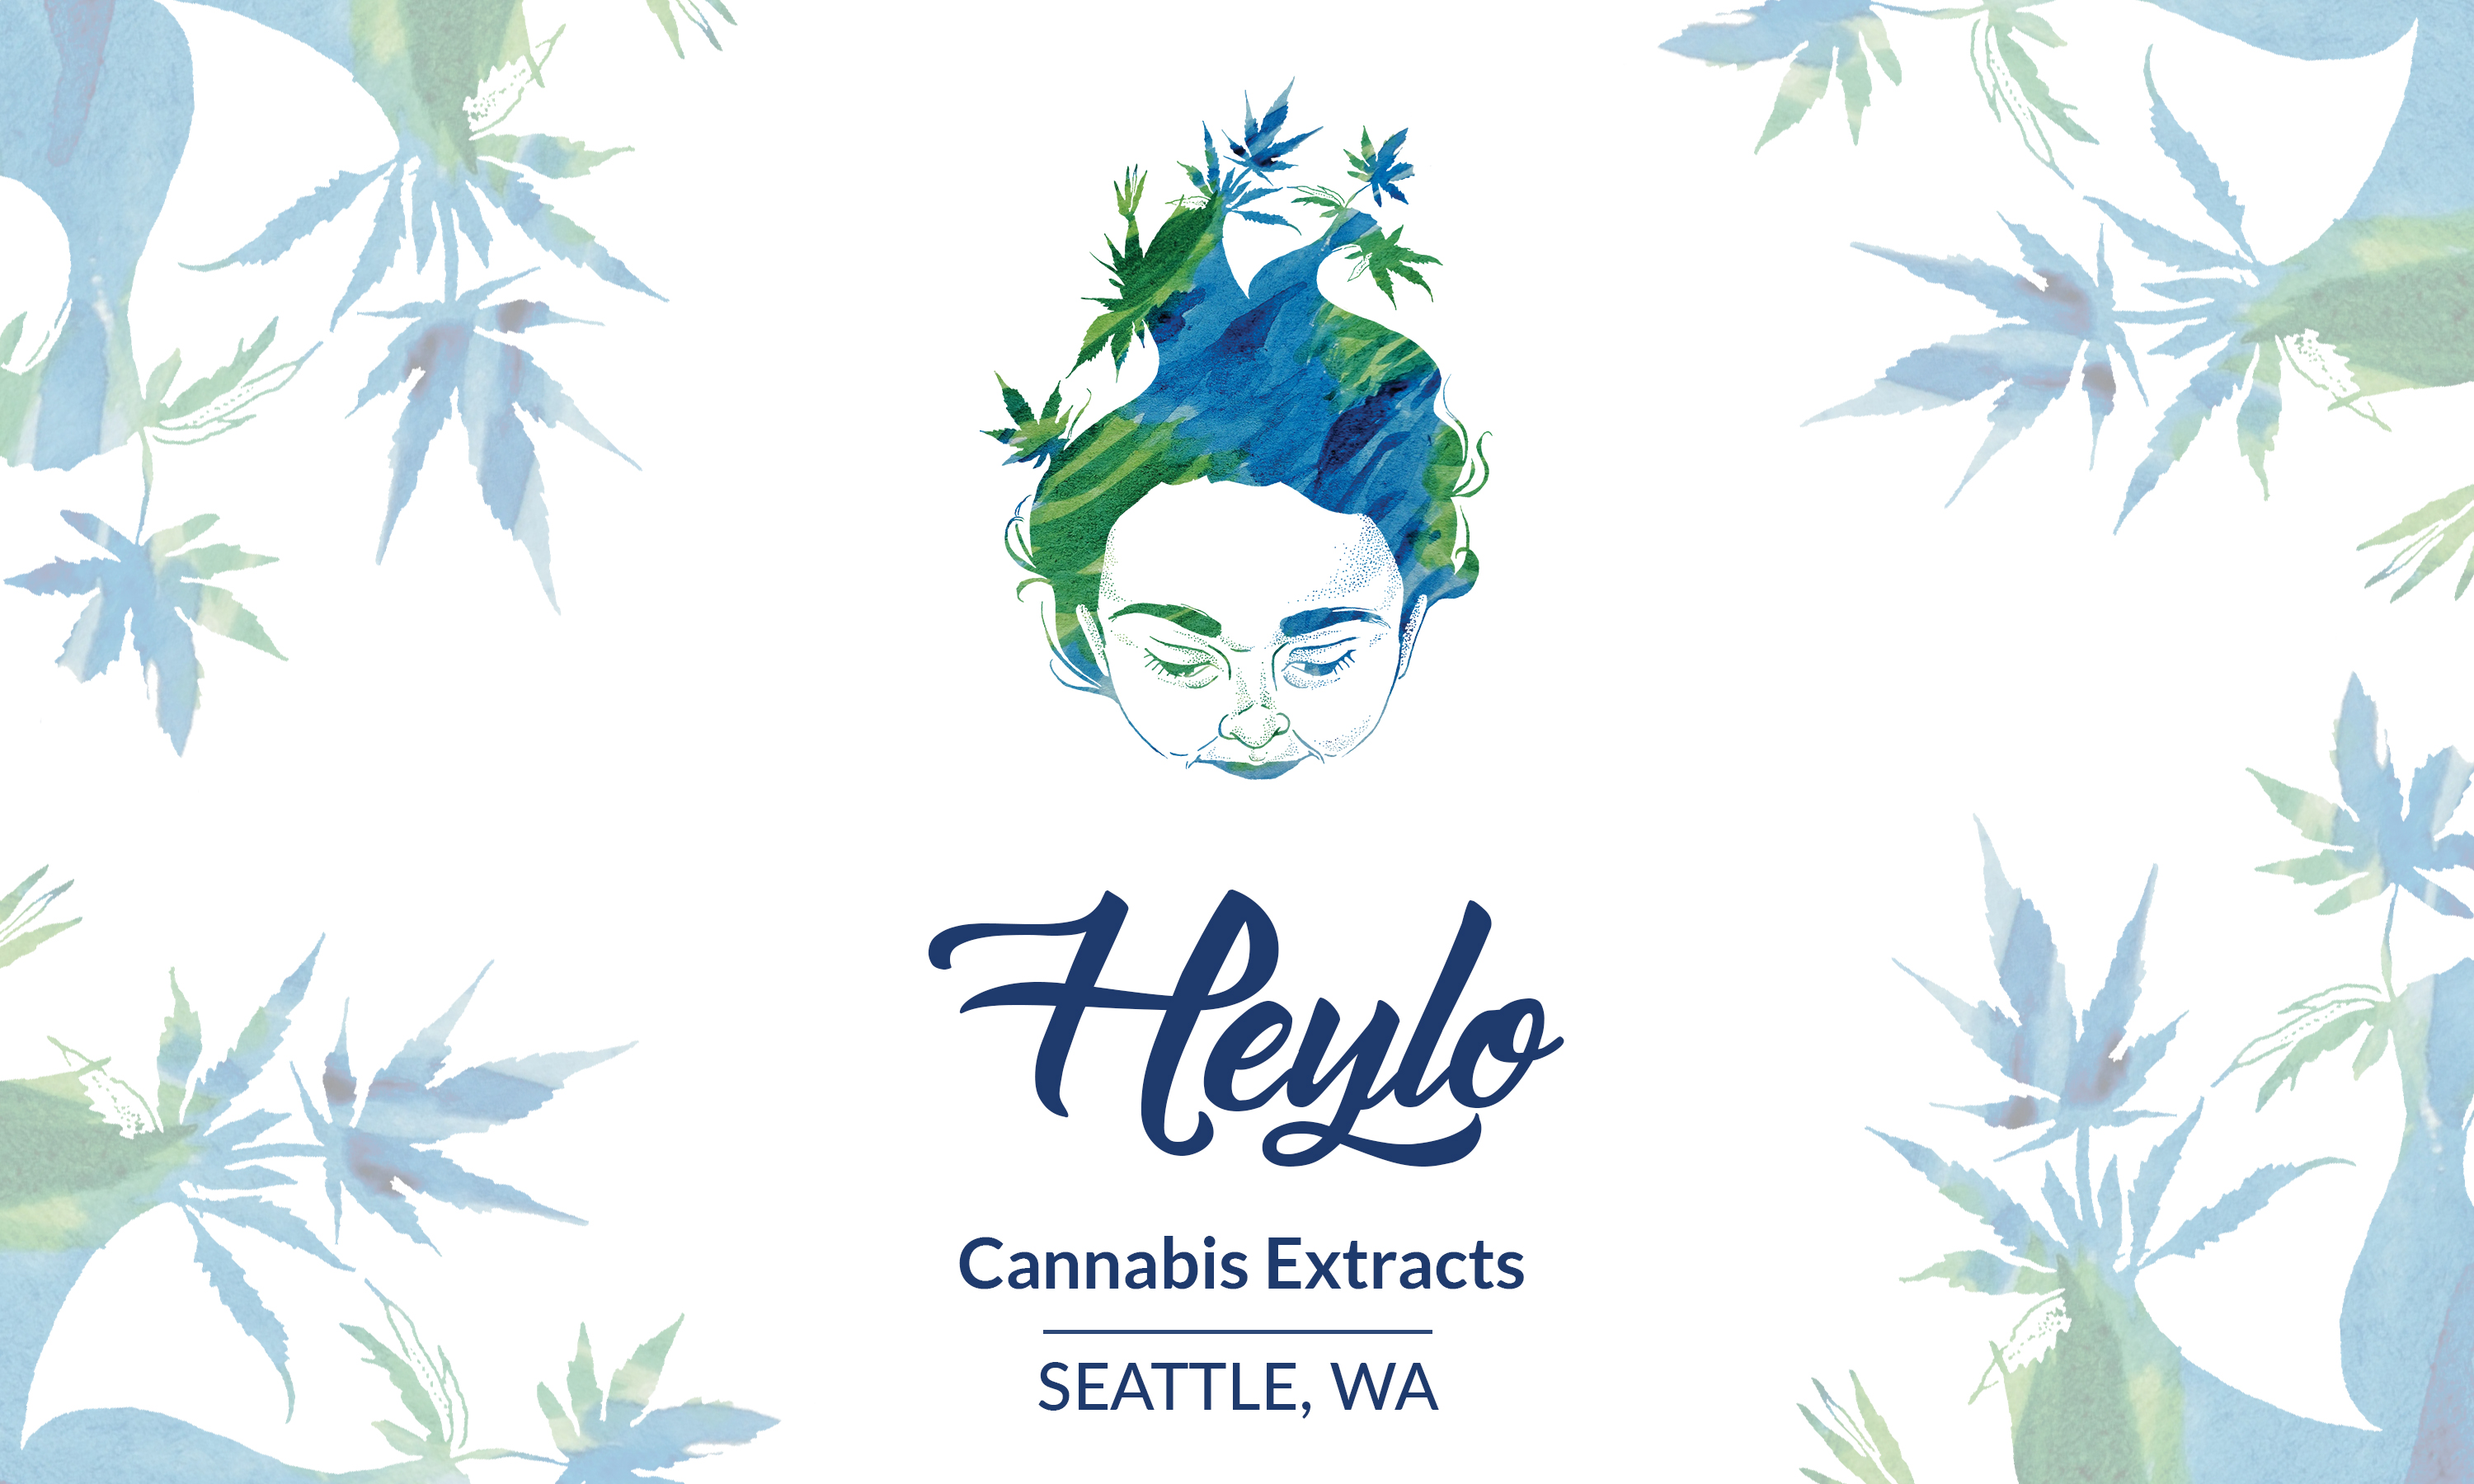 Heylo Cannabis | Strains, Analytics, and Playlists for Vape Oil